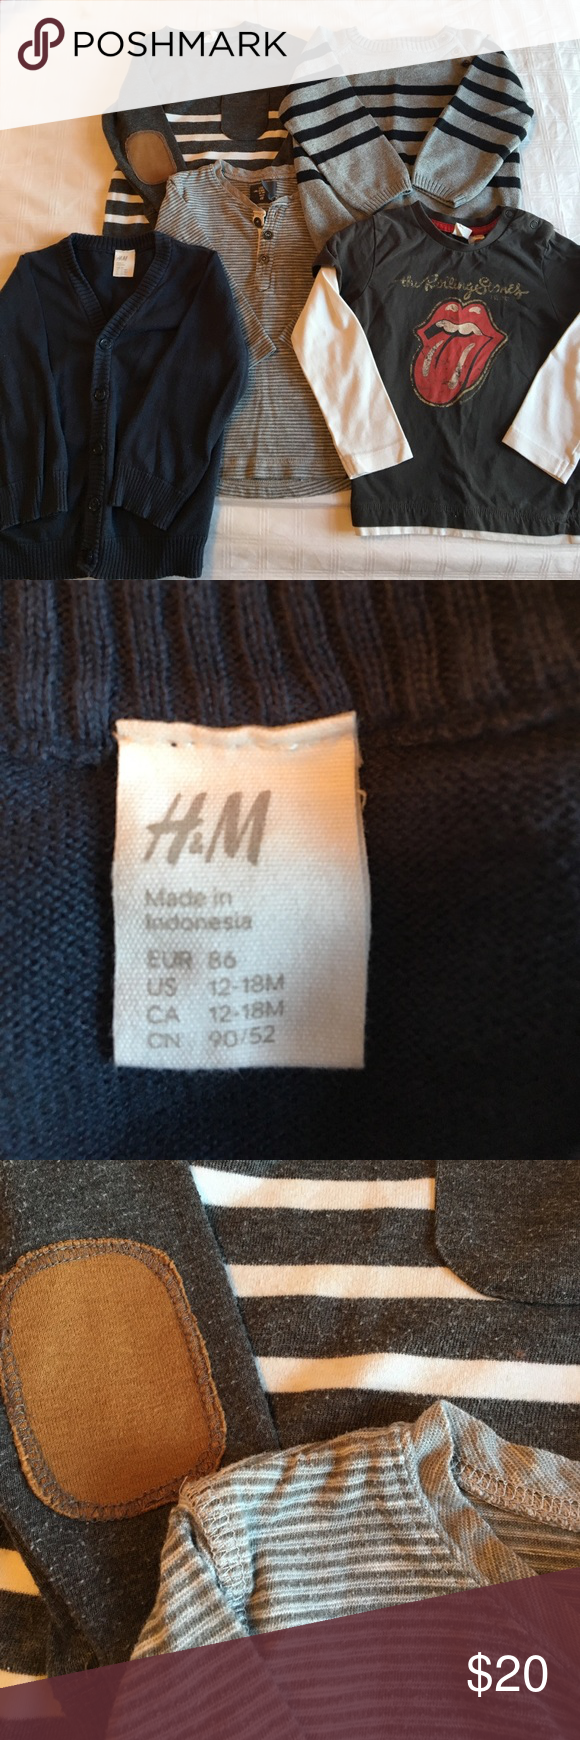 H&M boys top bundle All H&M 12-18m tops. One knitted sweater in grey and black stripe. Navy cotton cardigan. All long sleeve. H&M Shirts & Tops Tees - Long Sleeve